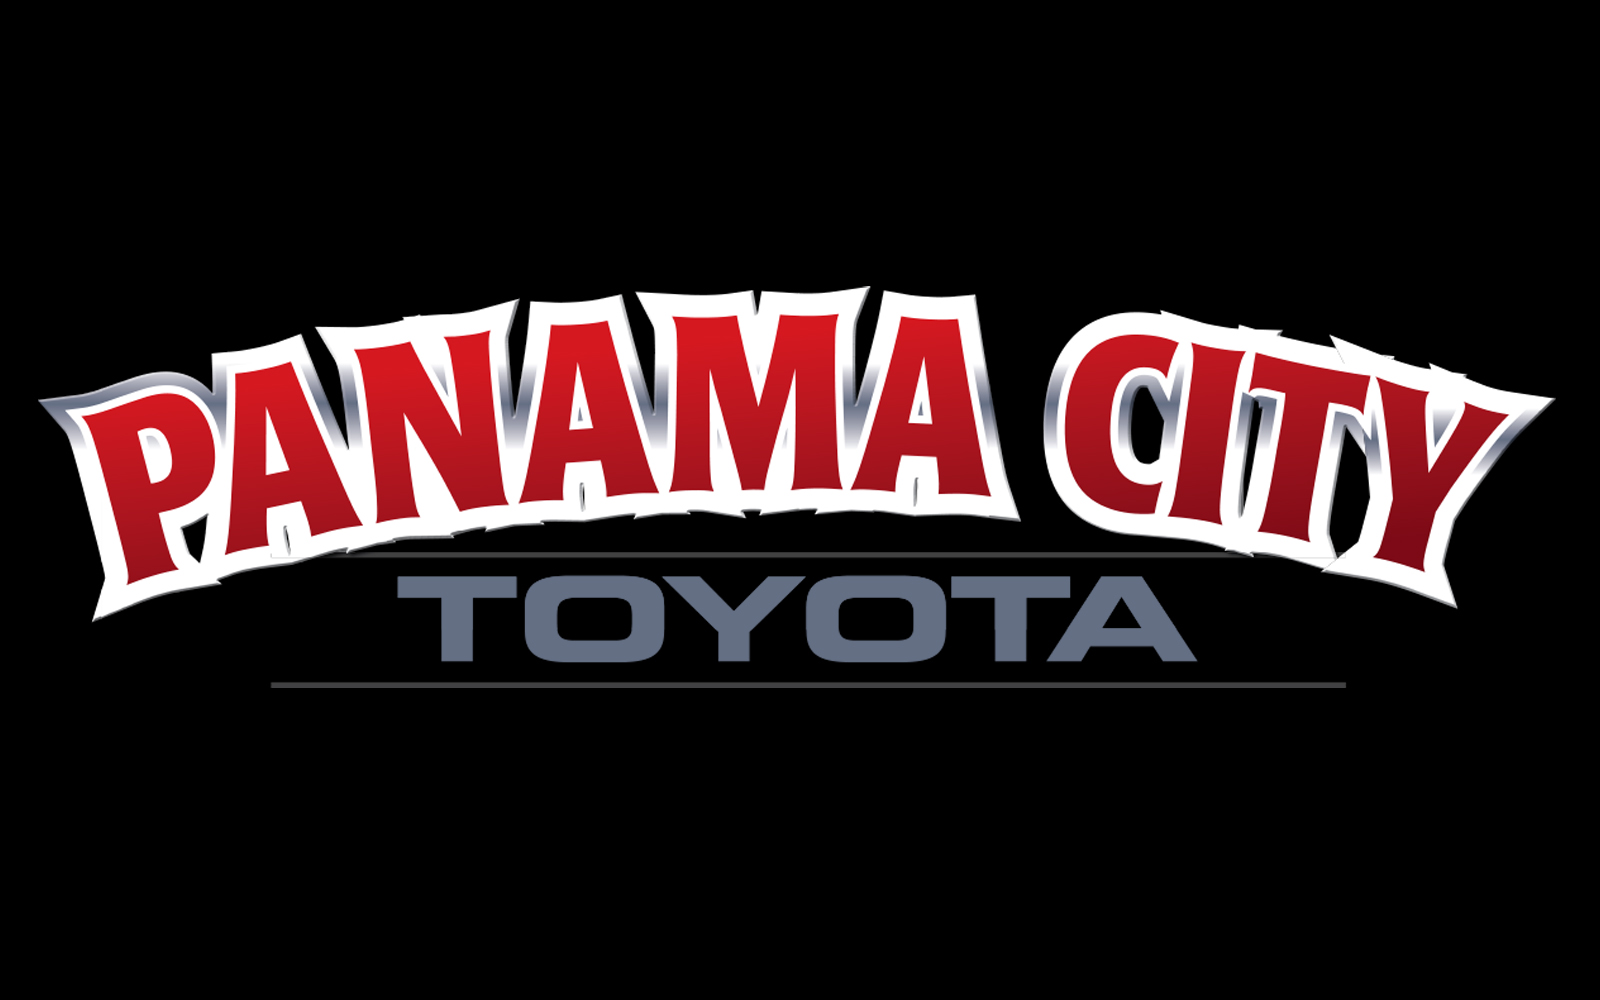 Panama City Toyota sponsorship graphic_edited-2.jpg